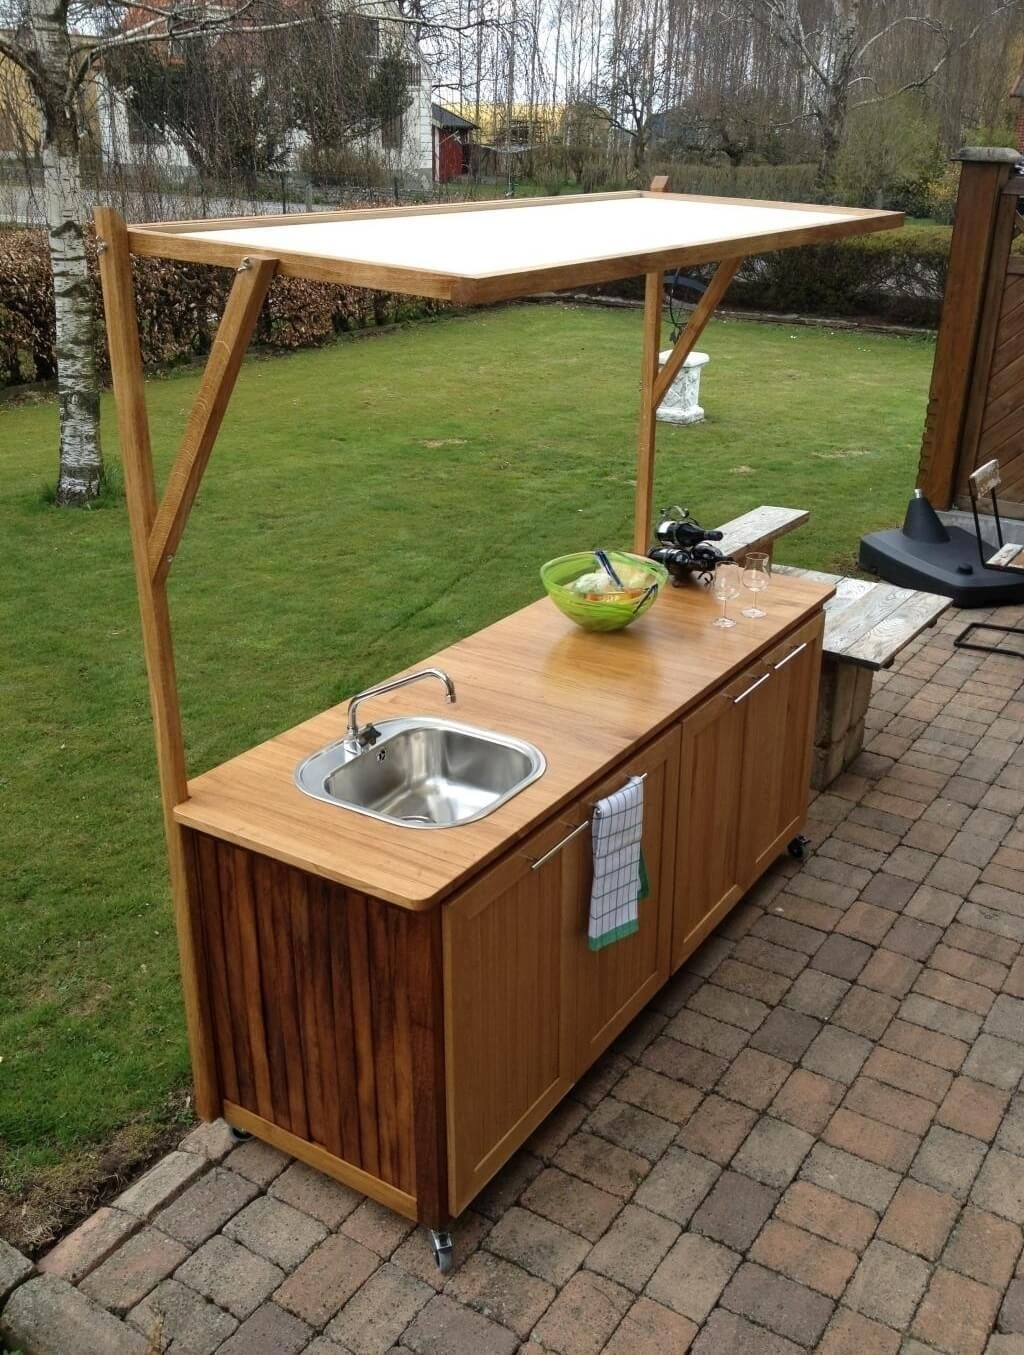 Image of: Outdoor Kitchen Sinks And Faucets Victoriaentrelassombras With Outdoor Kitchen Sink Drain Best Outdoor Kitchen Sink Drain Idea